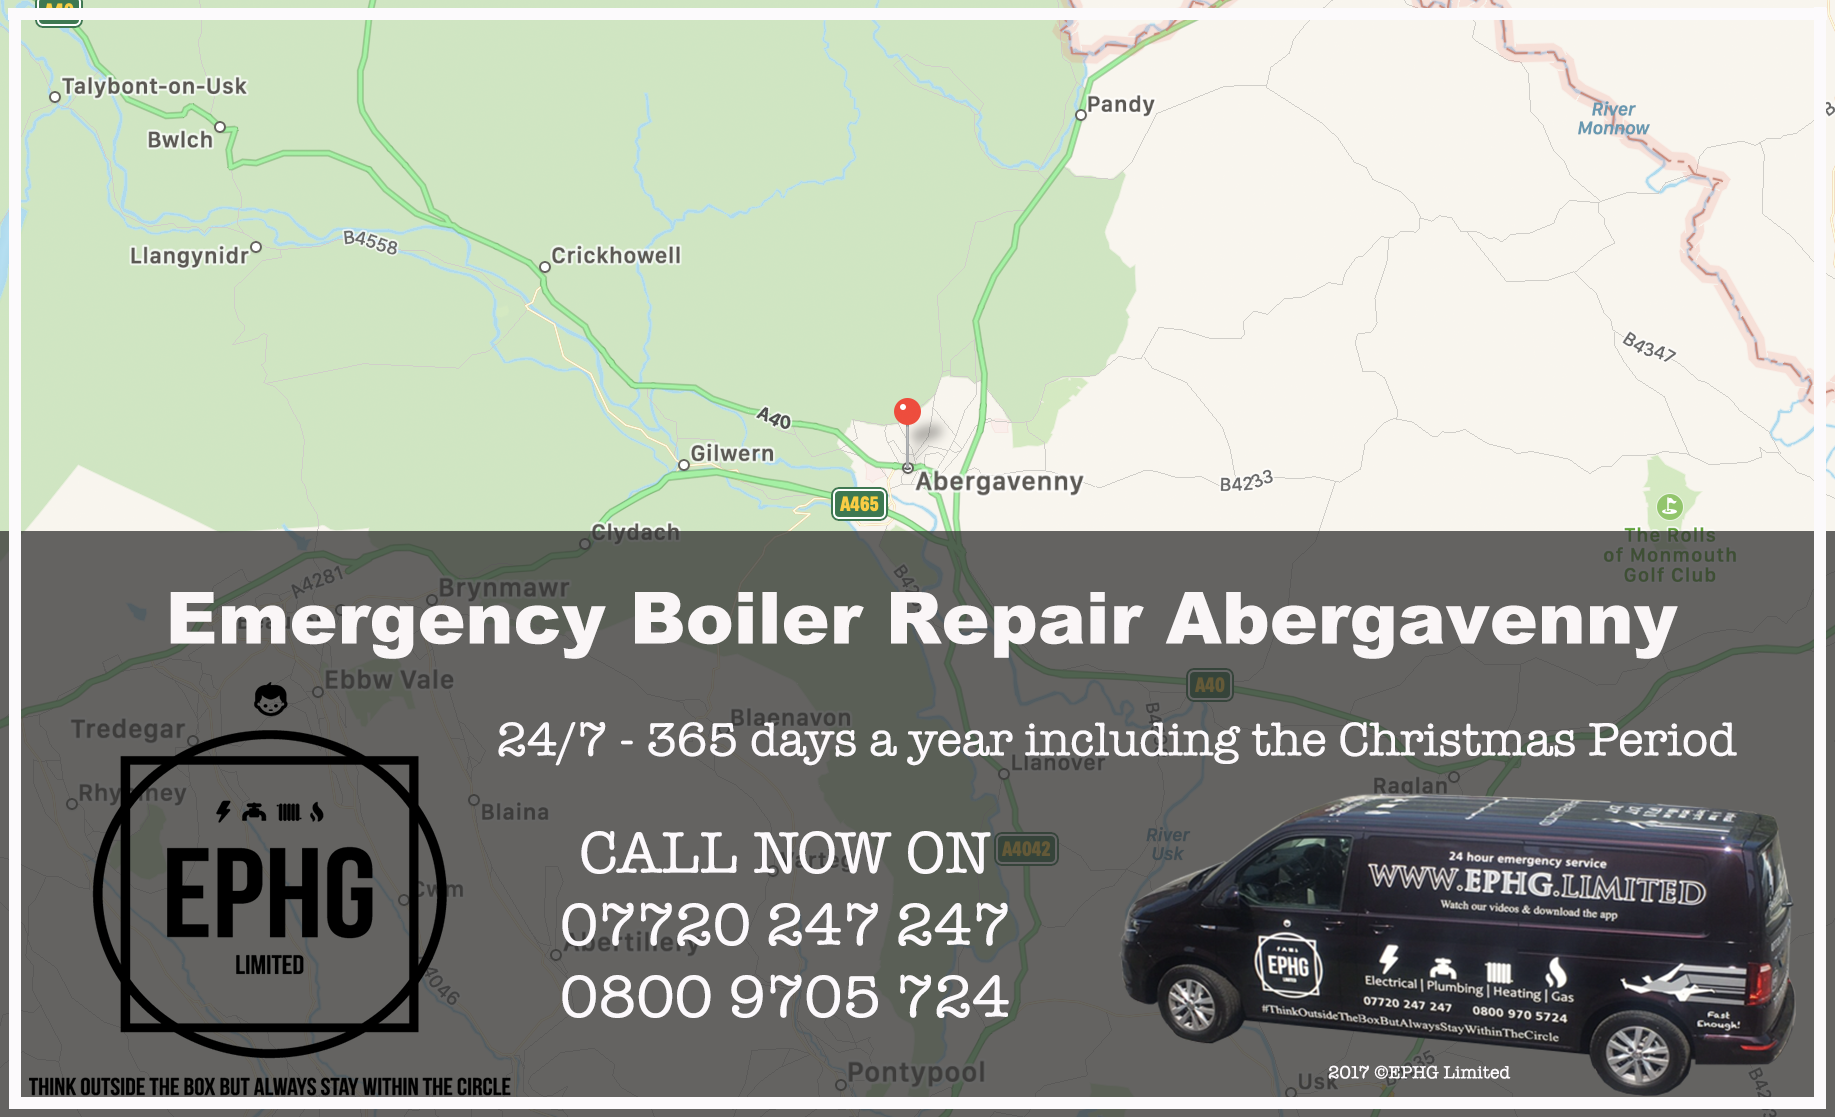 24 Hour Emergency Boiler Repair Abergavenny